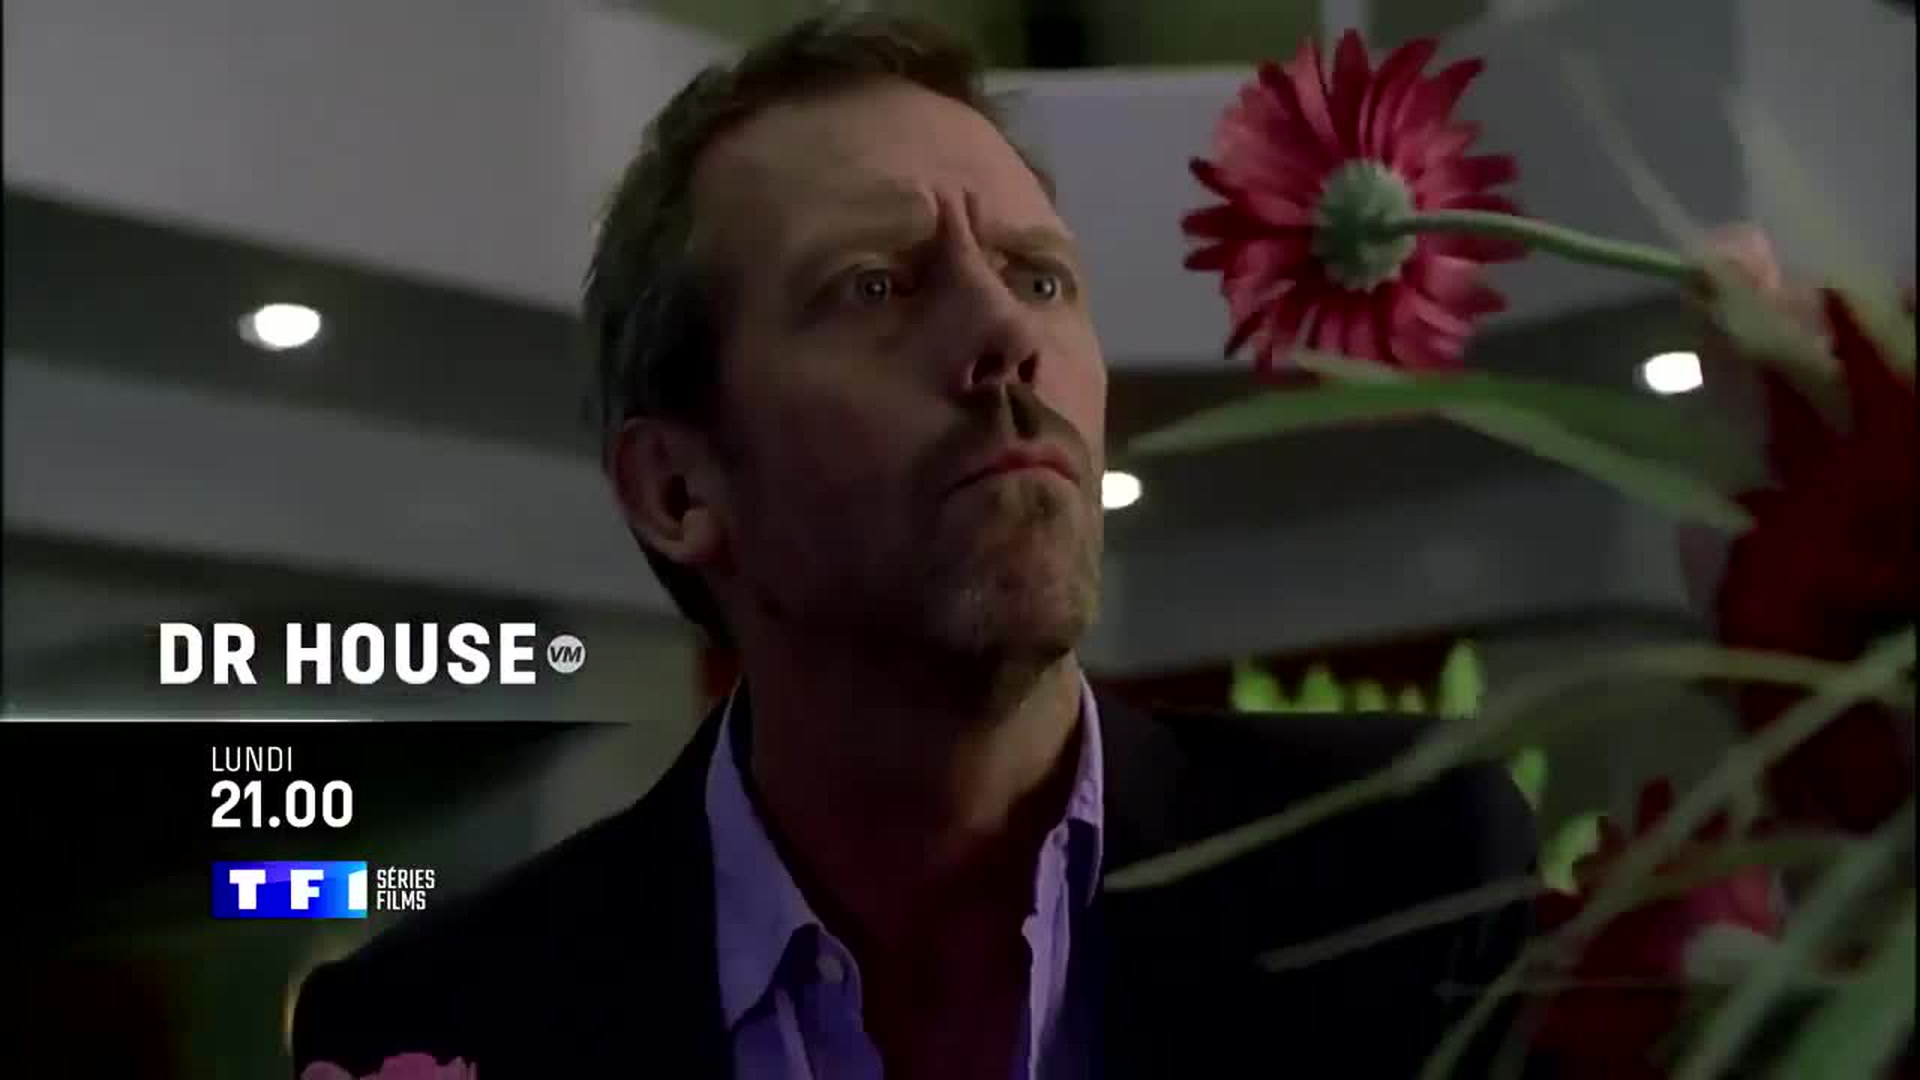 Dr House : On fait quoi maintenant ?